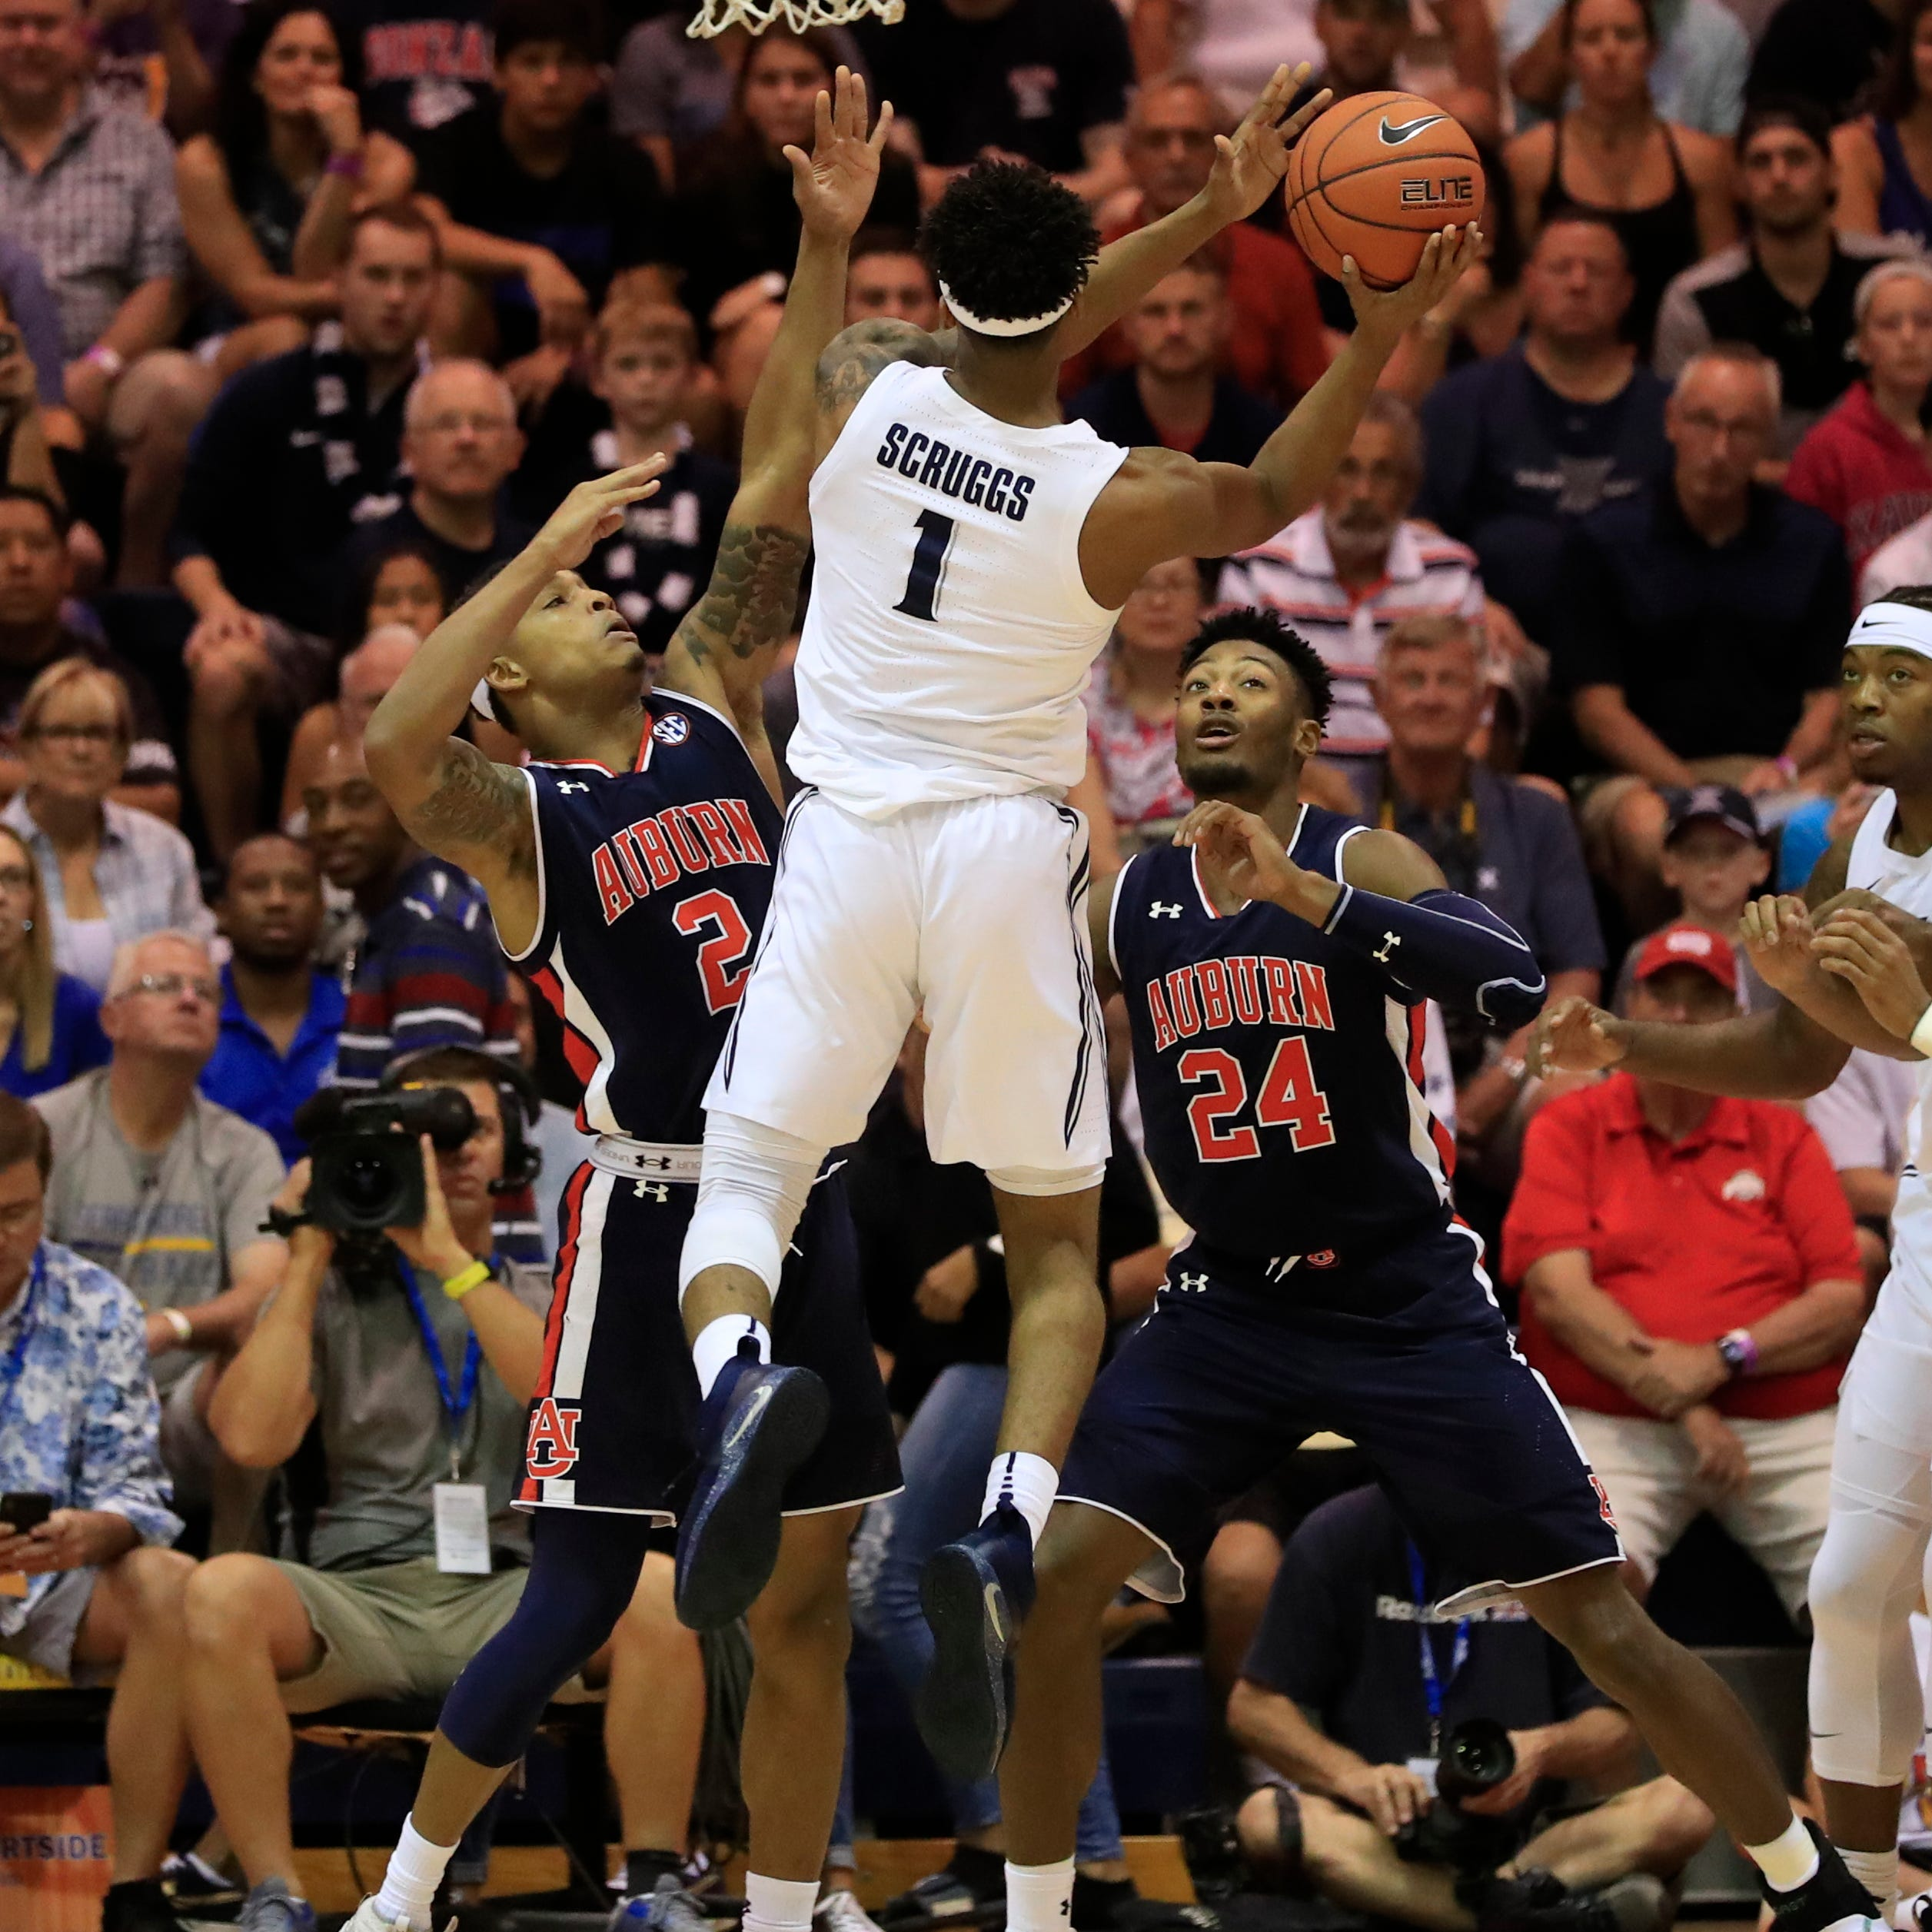 Live updates: Xavier, Auburn locked in a barn-burner in Maui